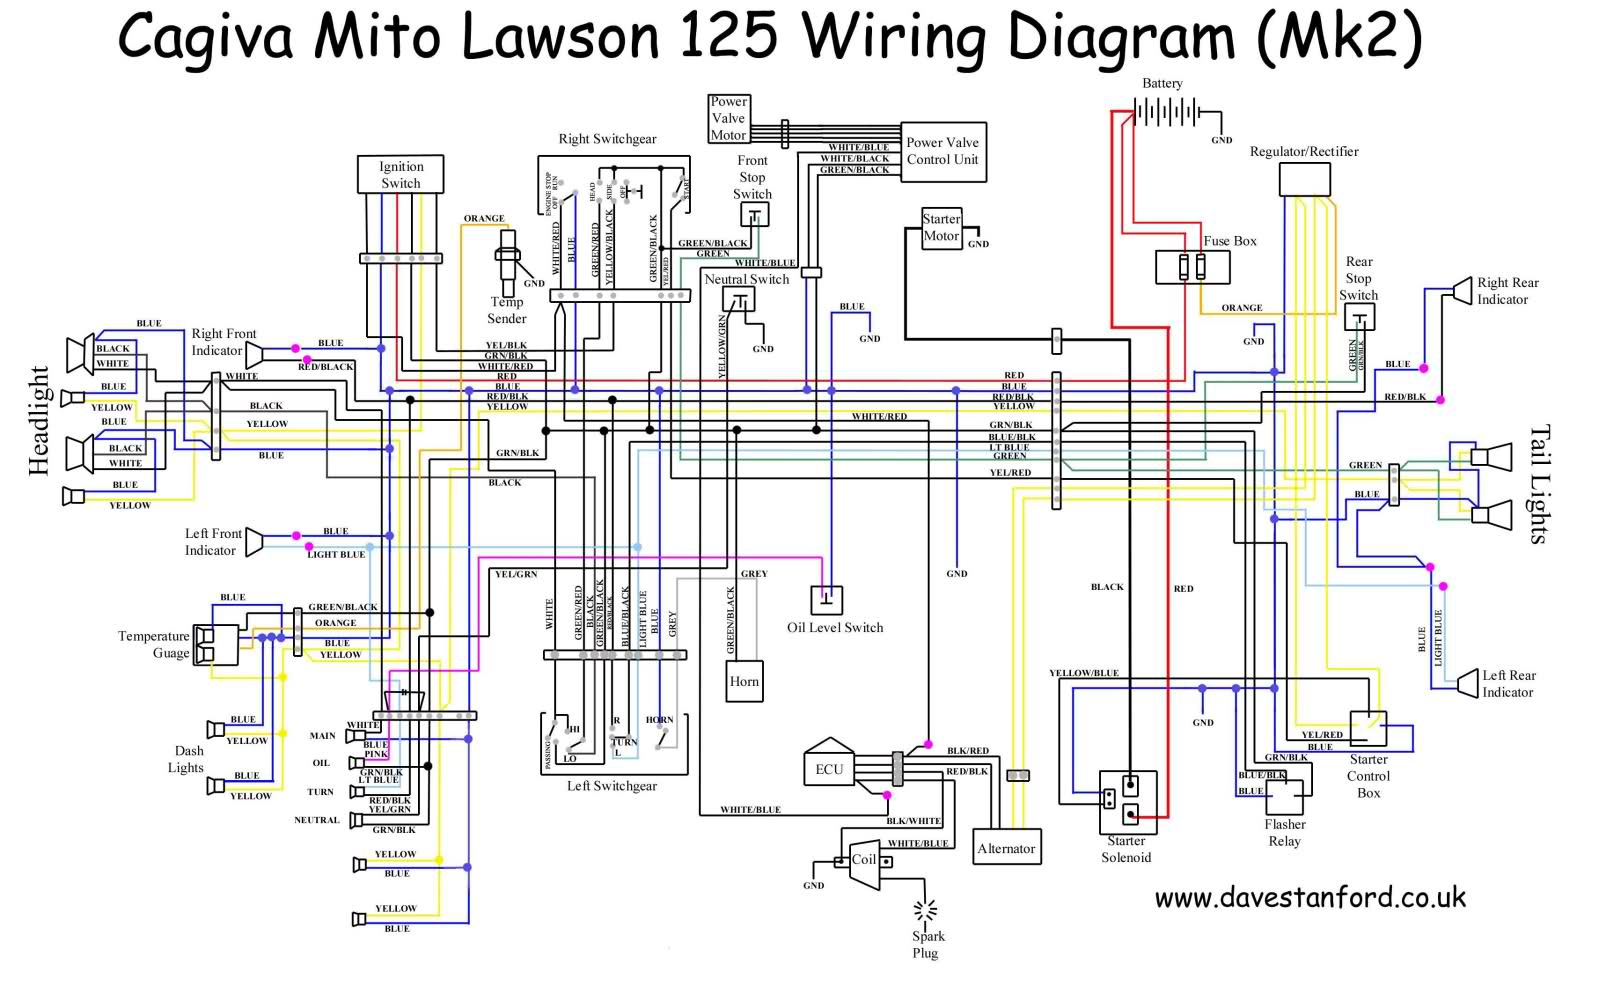 cagiva mito 125 cagiva mito 125 wiring diagrams electrics cagiva manual wiring diagram